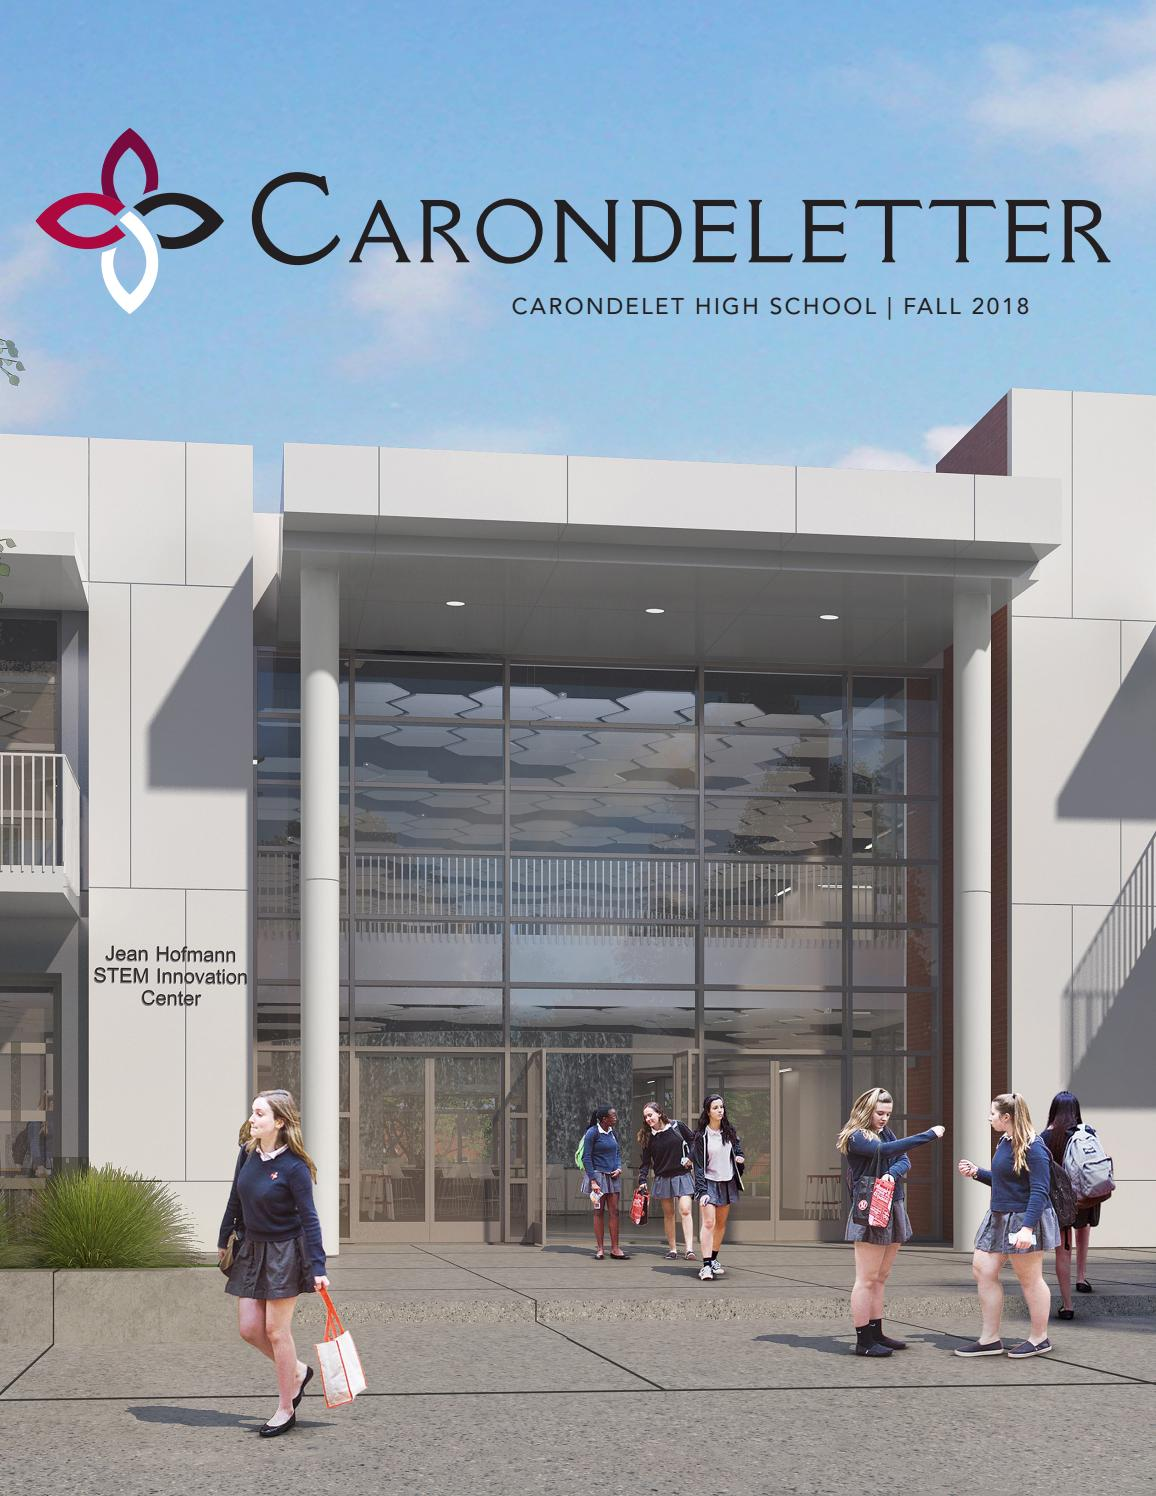 Carondeletter Fall 2018 by Carondelet High School - issuu